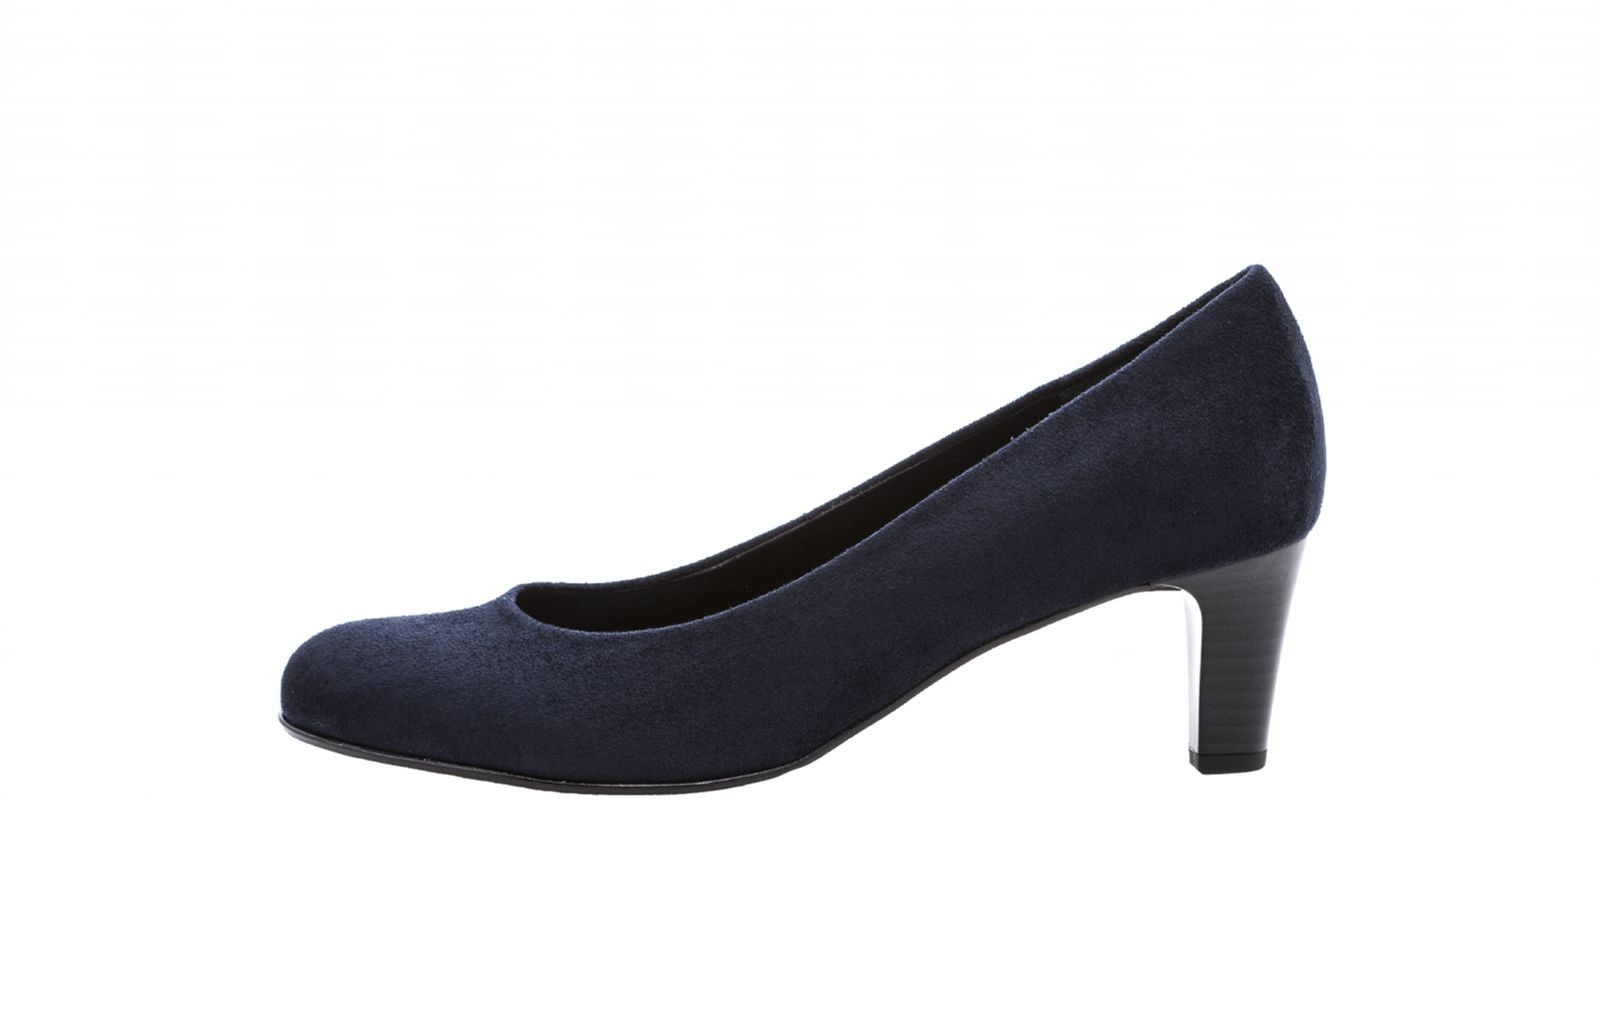 888d0e938dc97b Gabor Damen Pumps 85.200.36 river blau